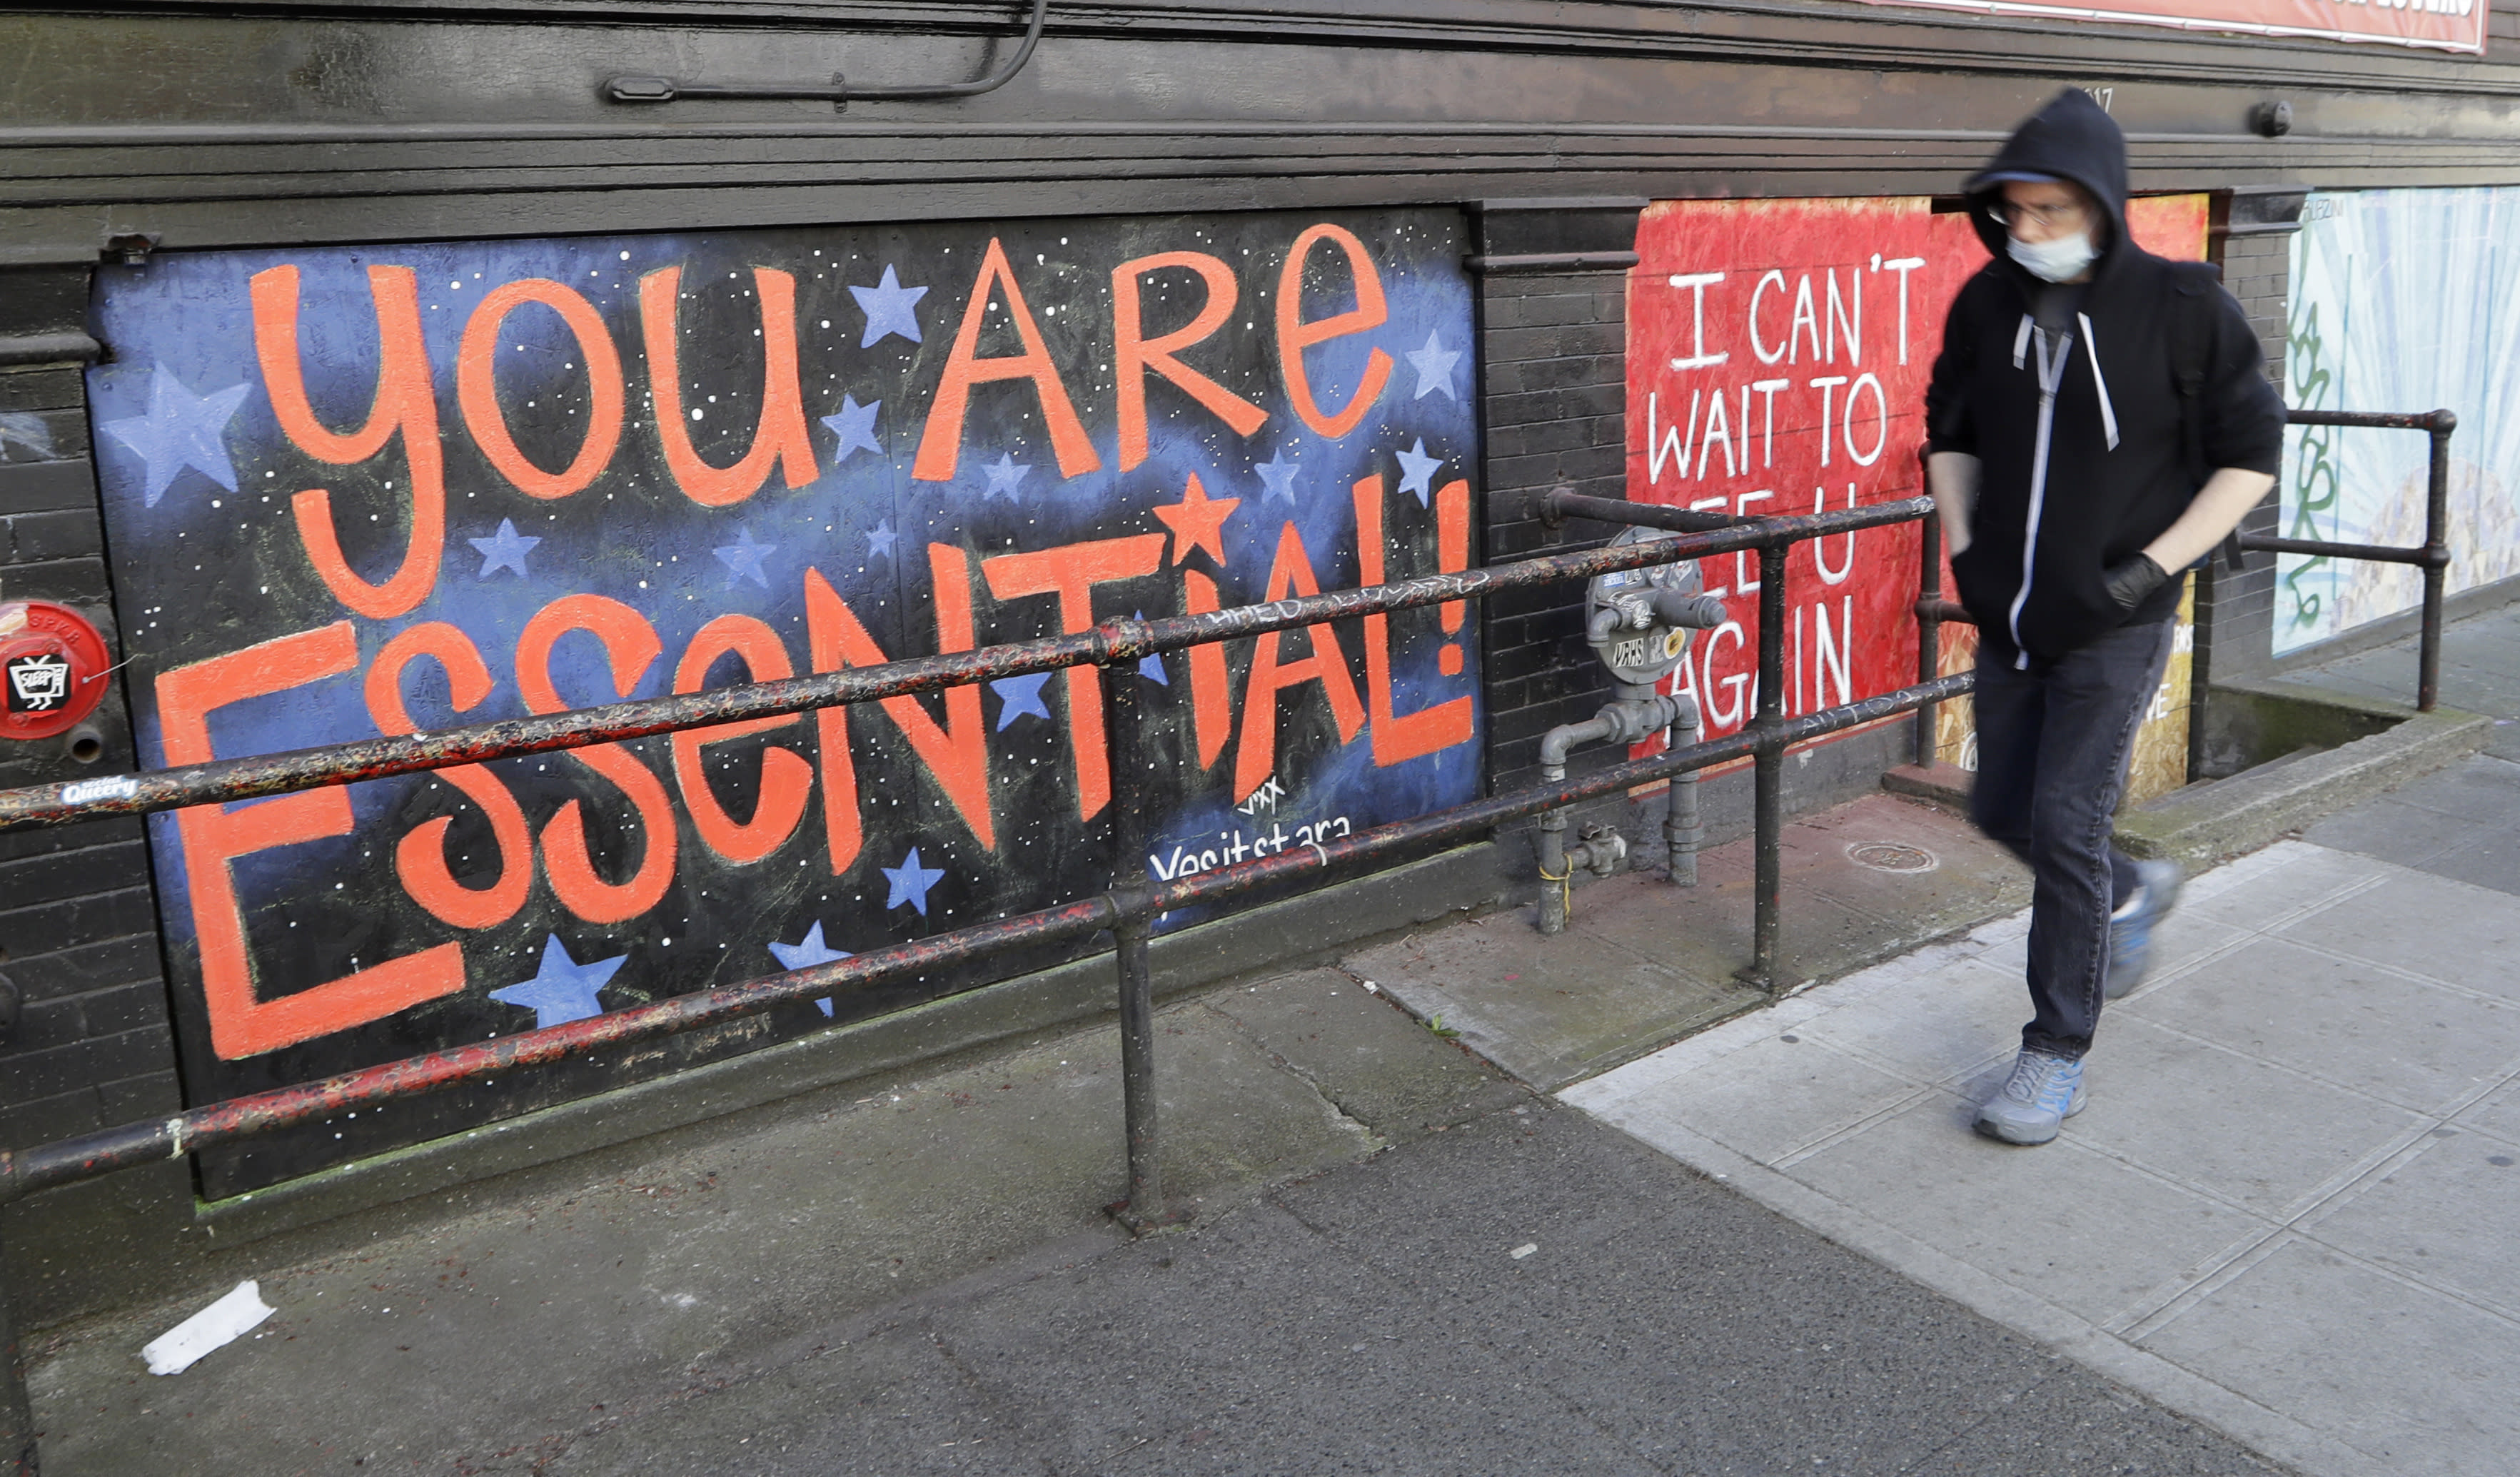 FILE - In this Thursday, April 16, 2020 file photo, a pedestrian walks past artwork painted on plywood covering a business closed during the coronavirus outbreak in Seattle. (AP Photo/Elaine Thompson)